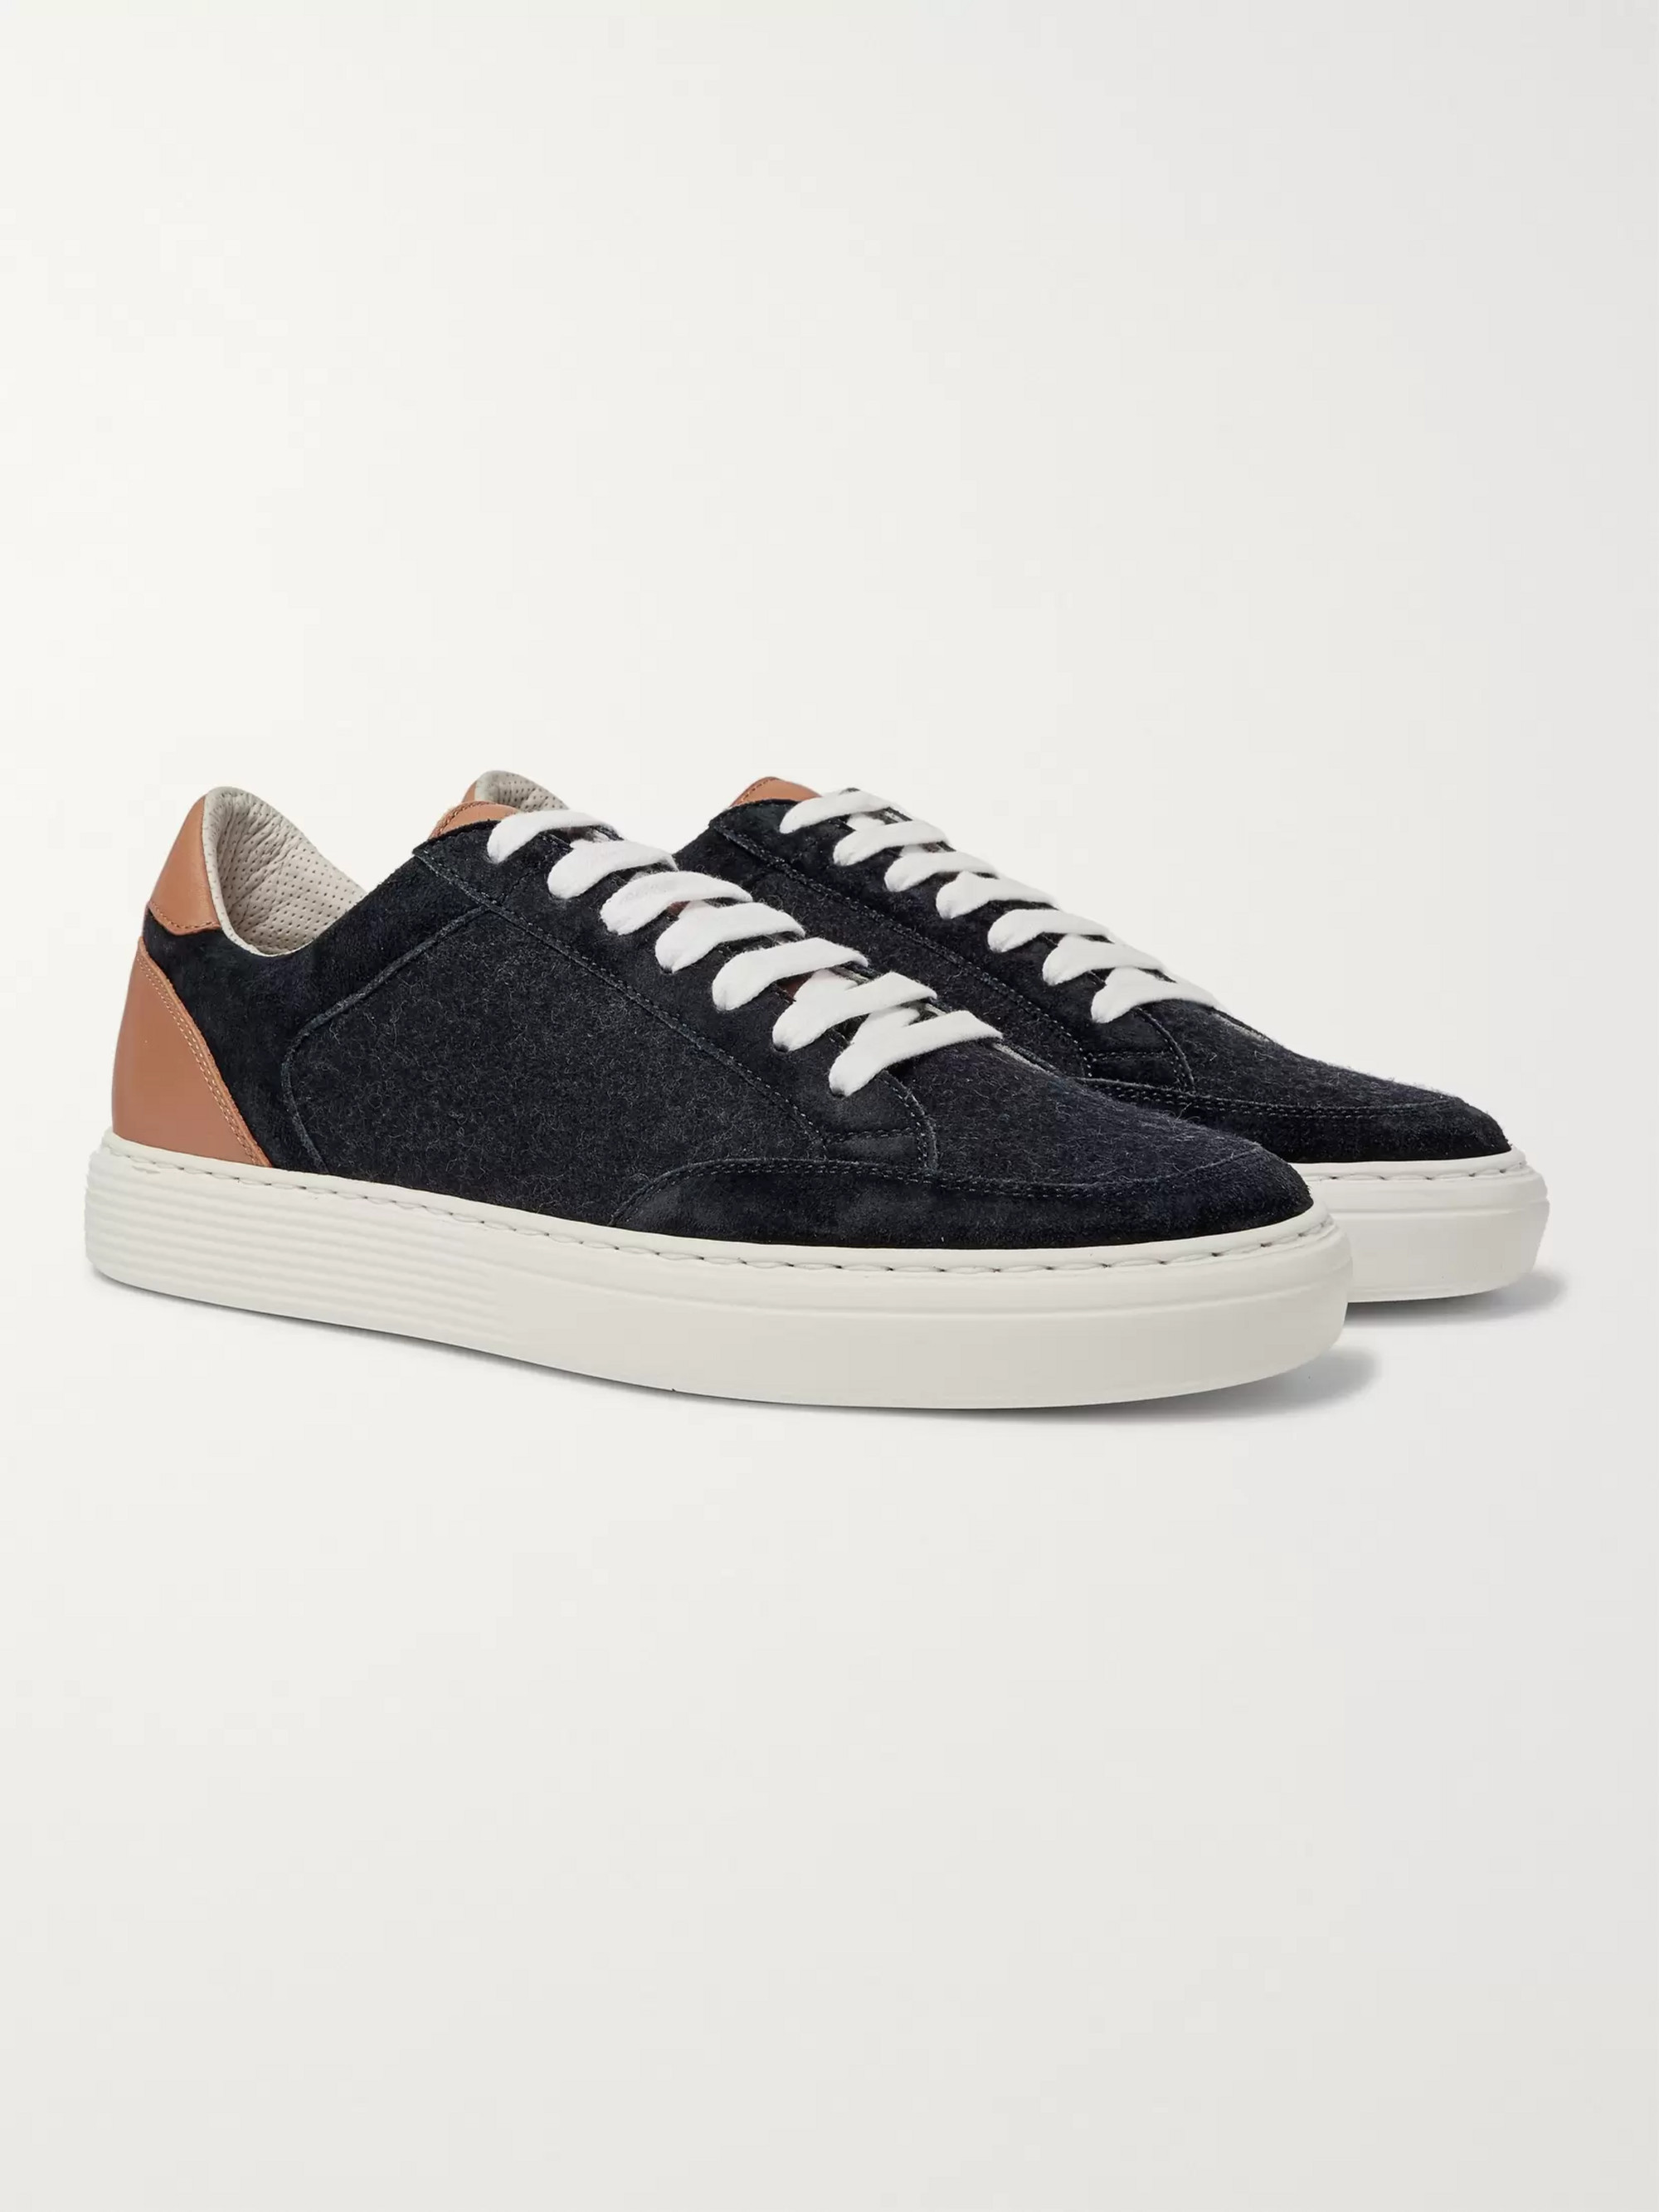 Brunello Cucinelli Leather, Suede and Flannel Sneakers